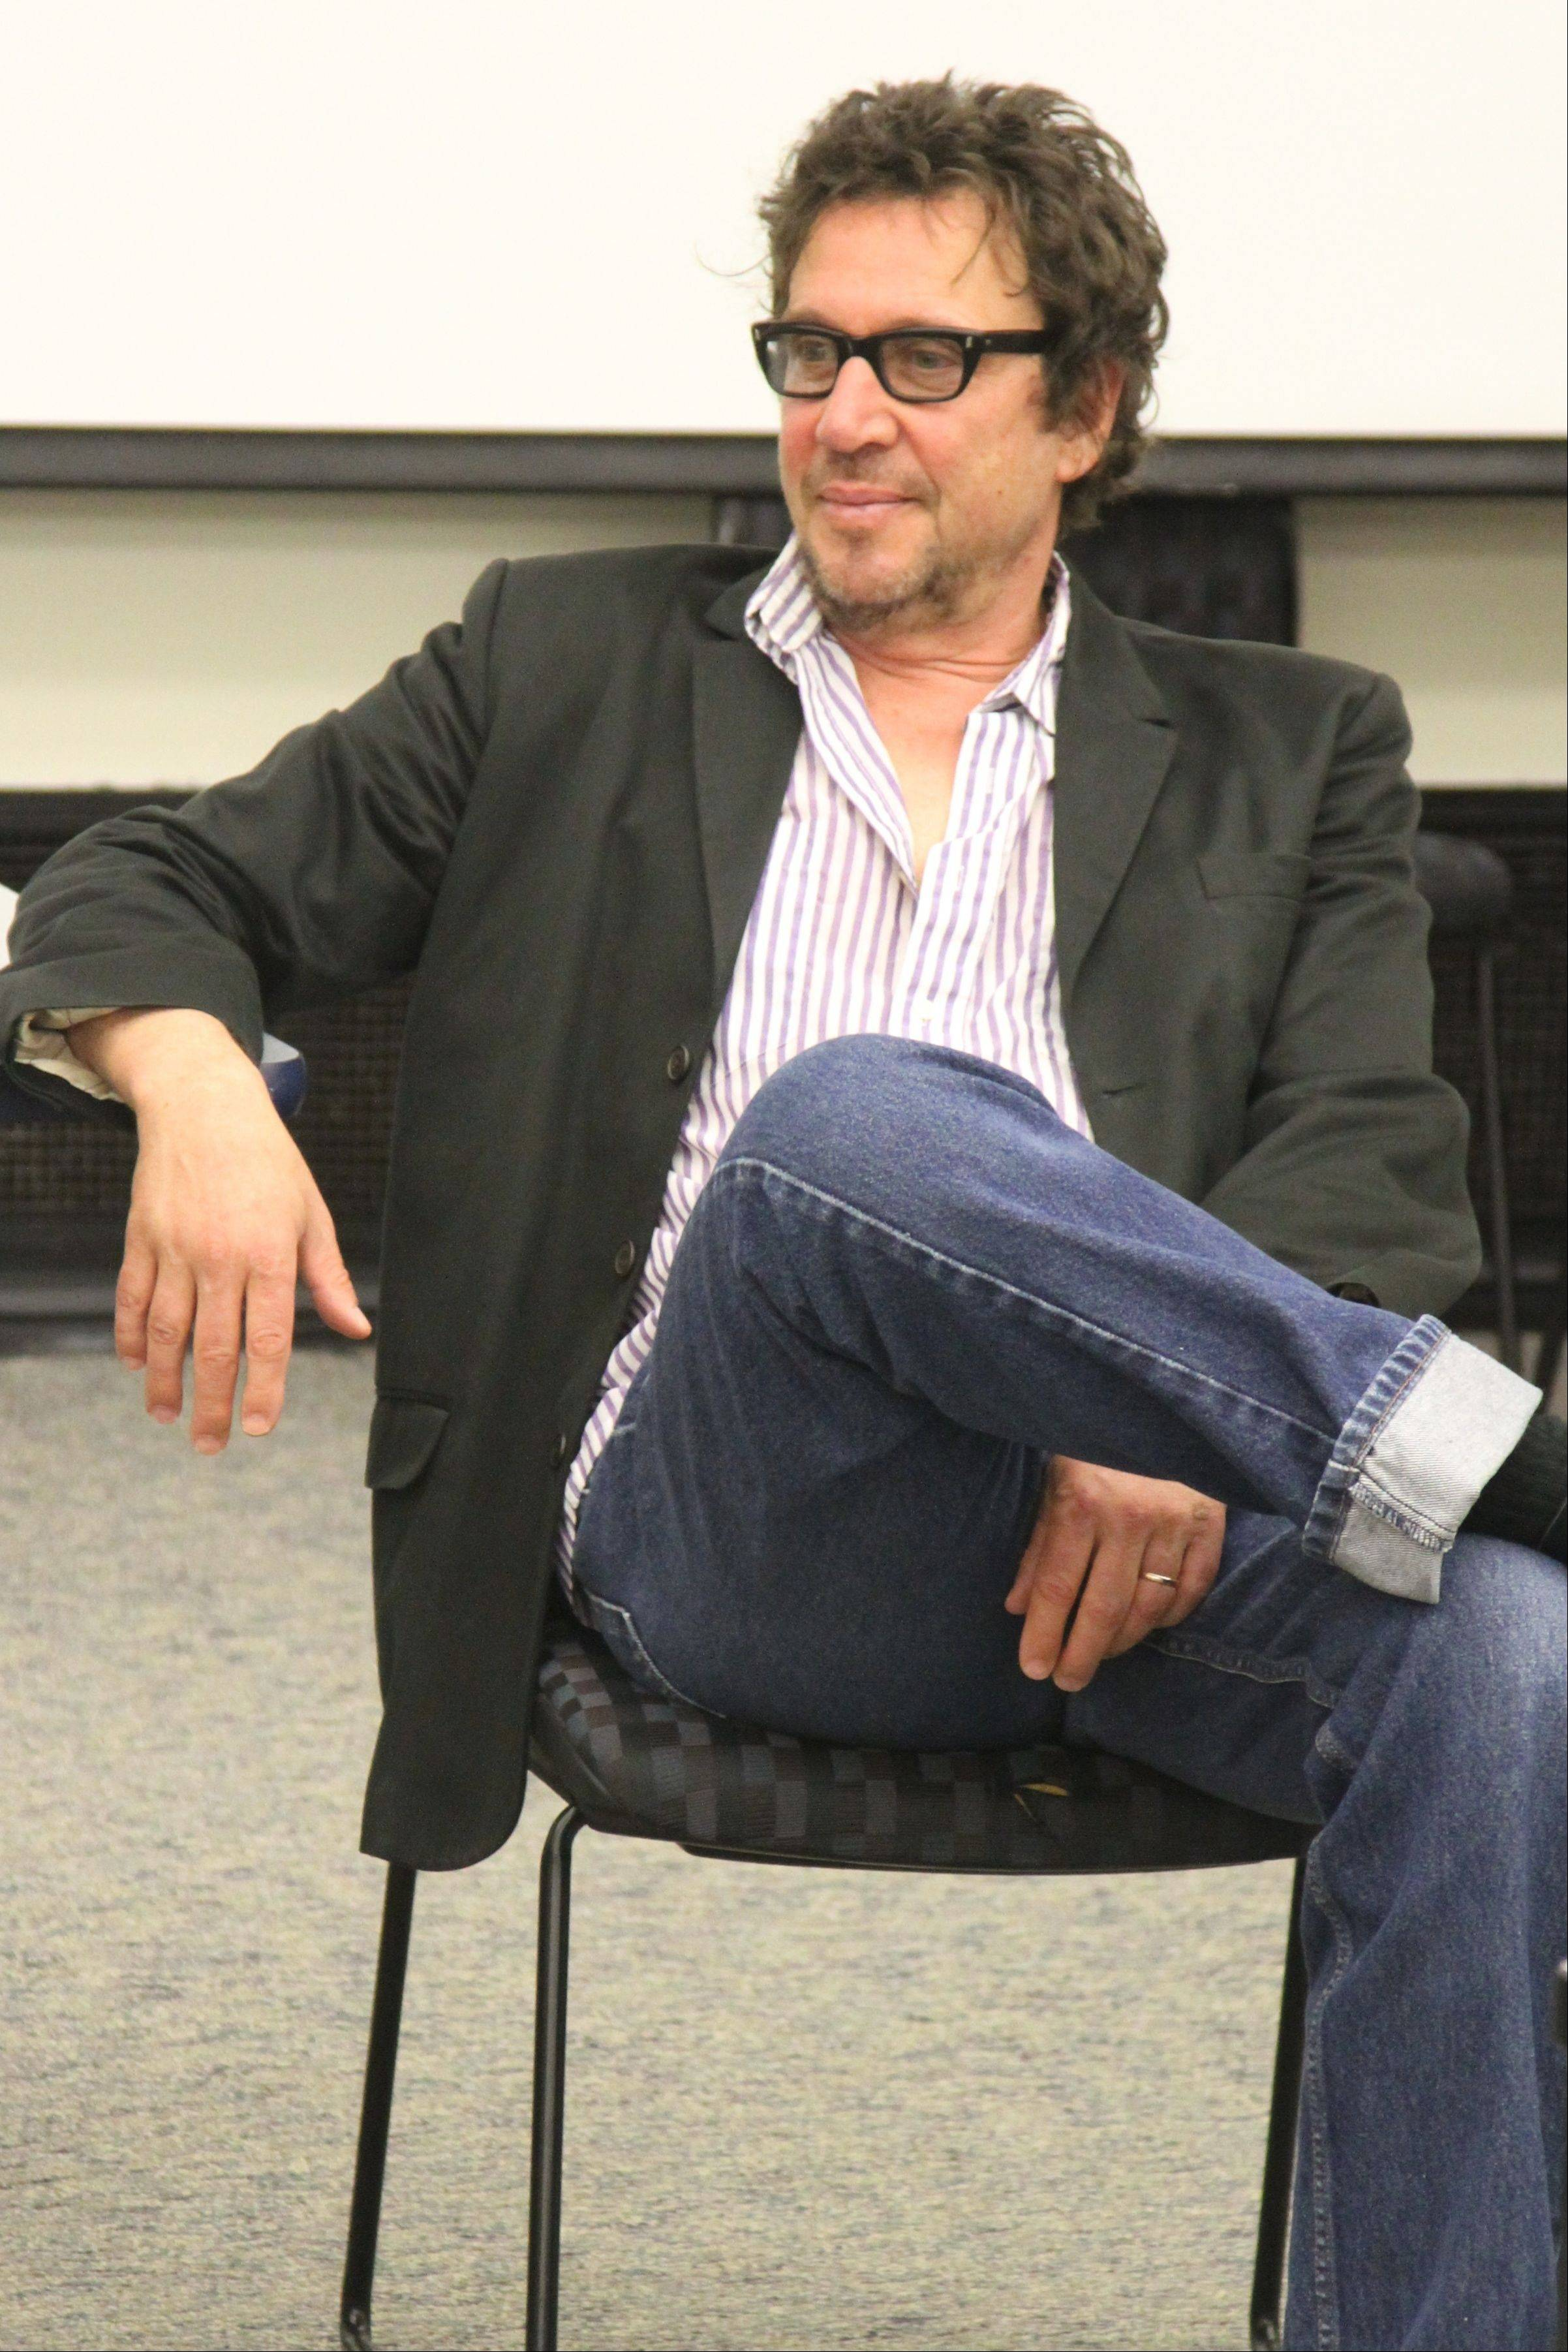 Punk rock musician and author Richard Hell, frontman of Richard Hell and the Voidoids, visits with Harper's class on the 1970s punk rock movement.